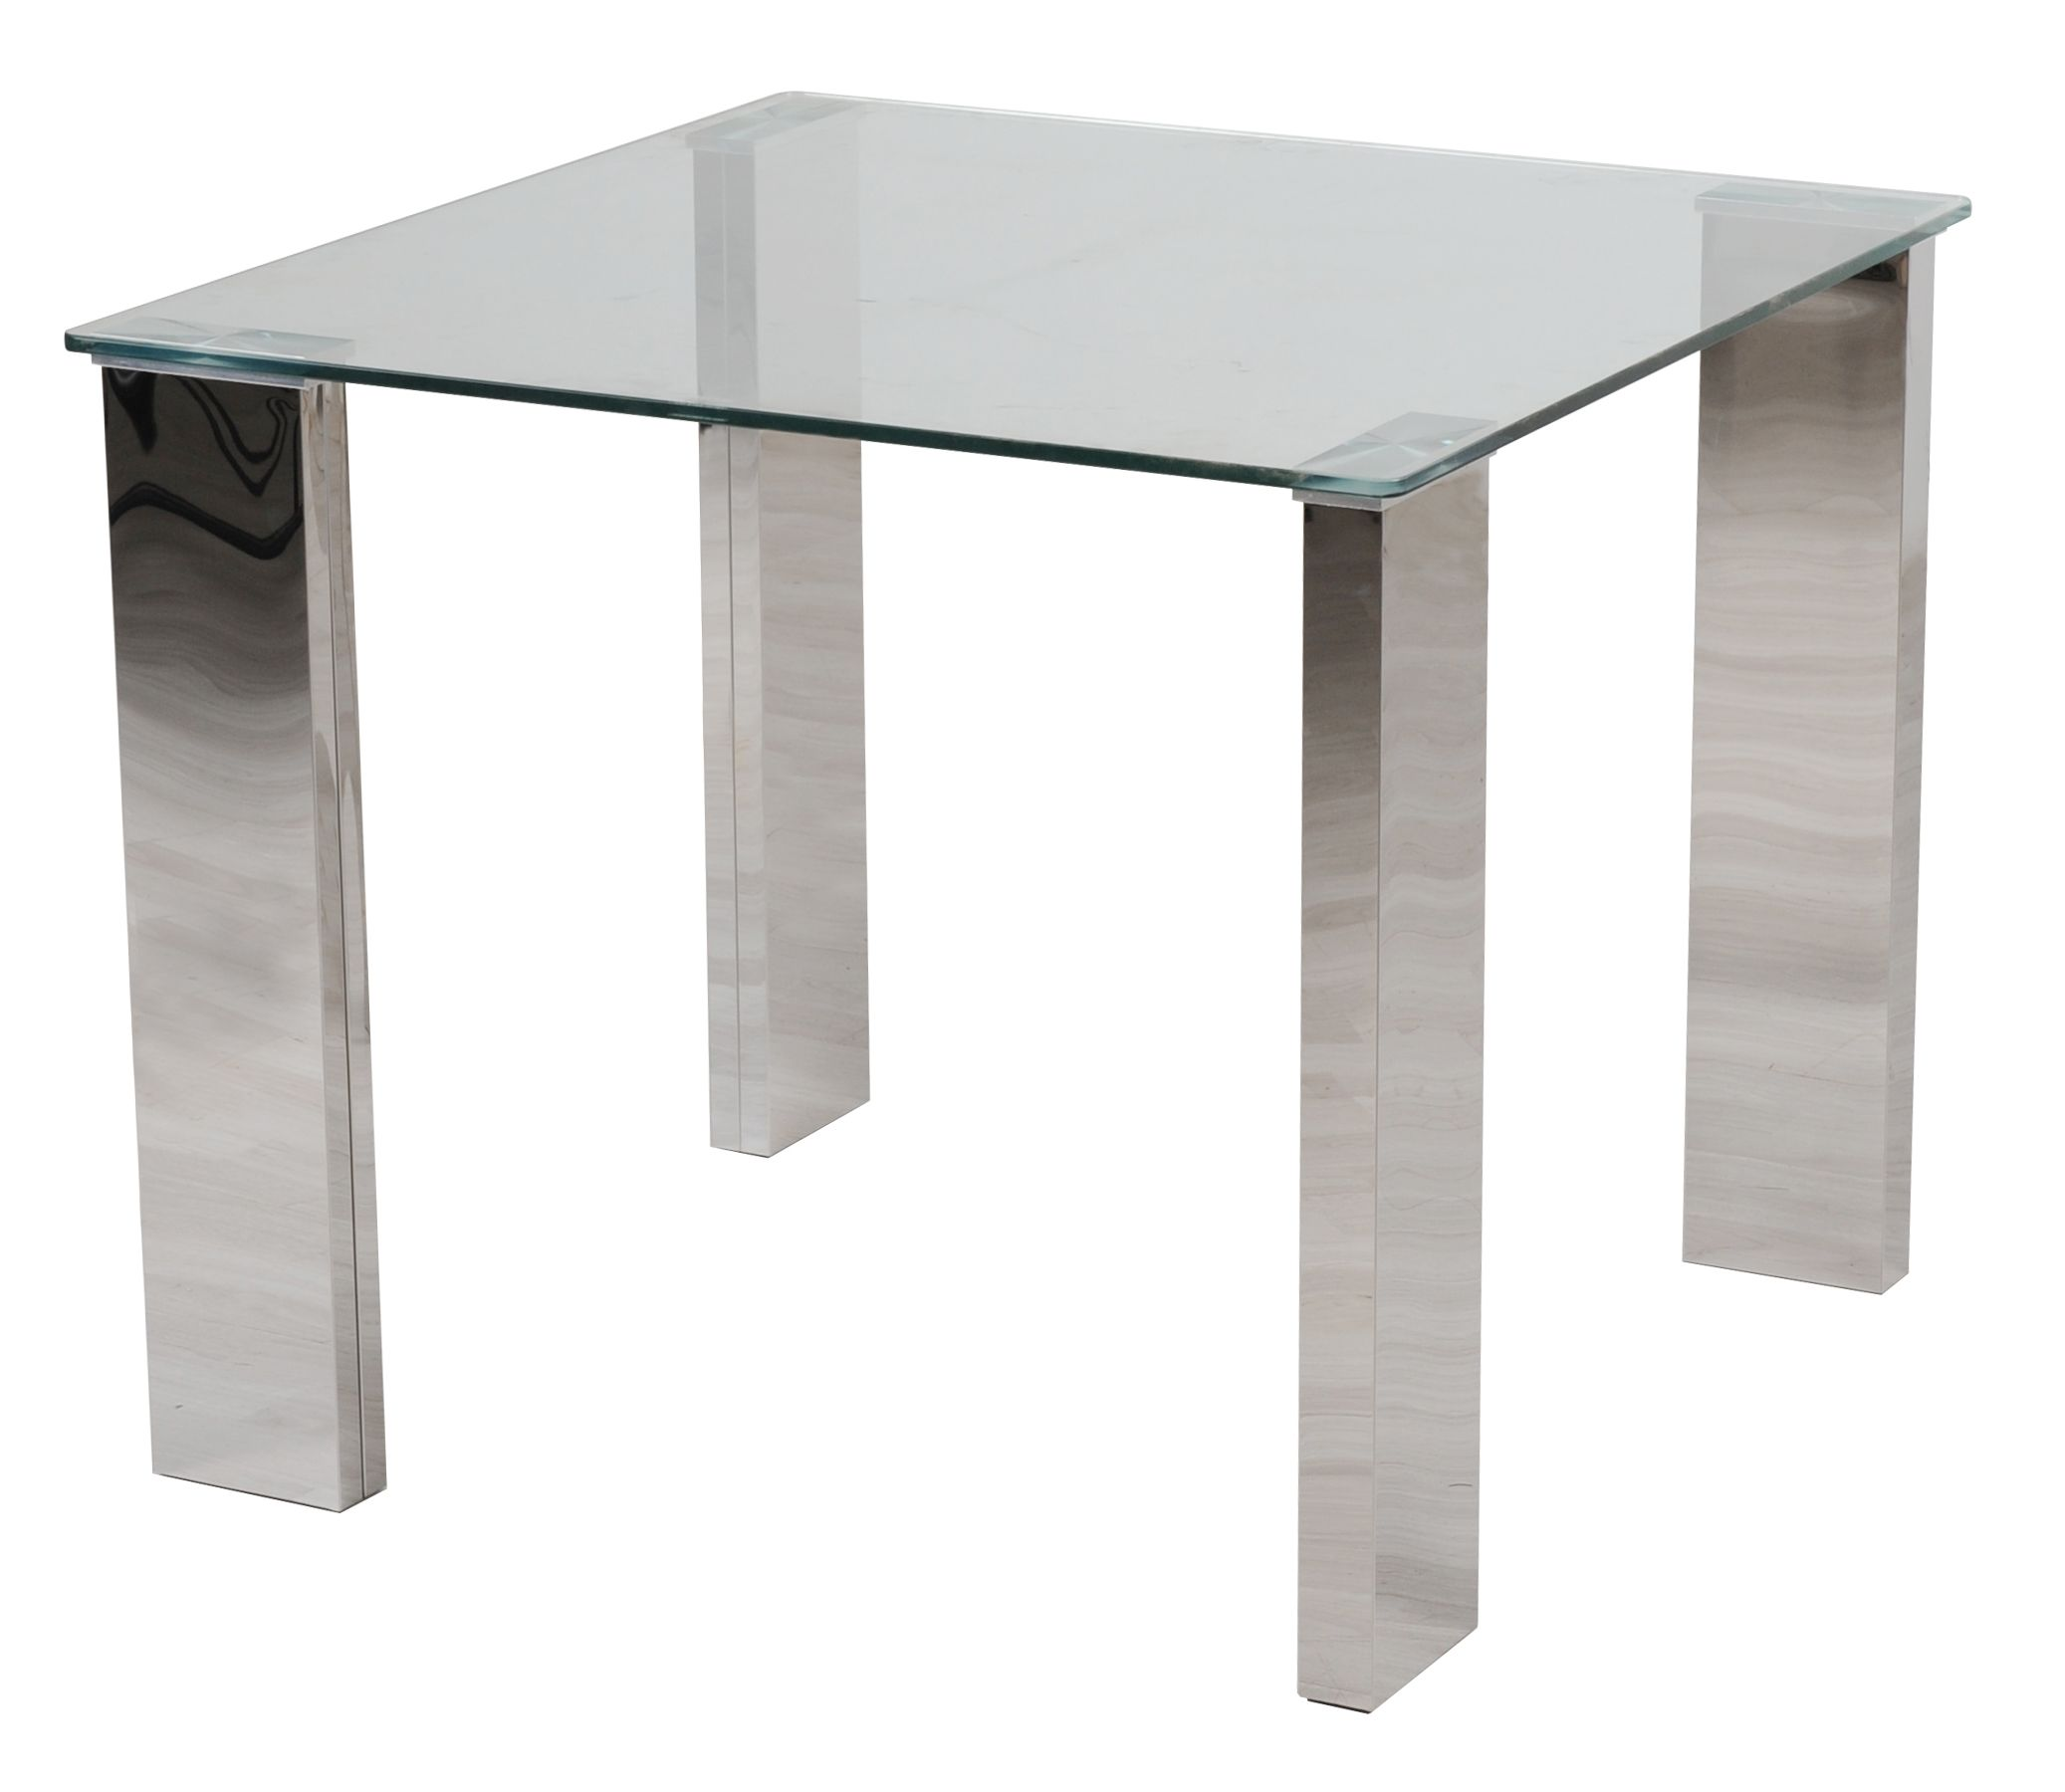 square glass dining table. Dakota Square Glass Dining Table A